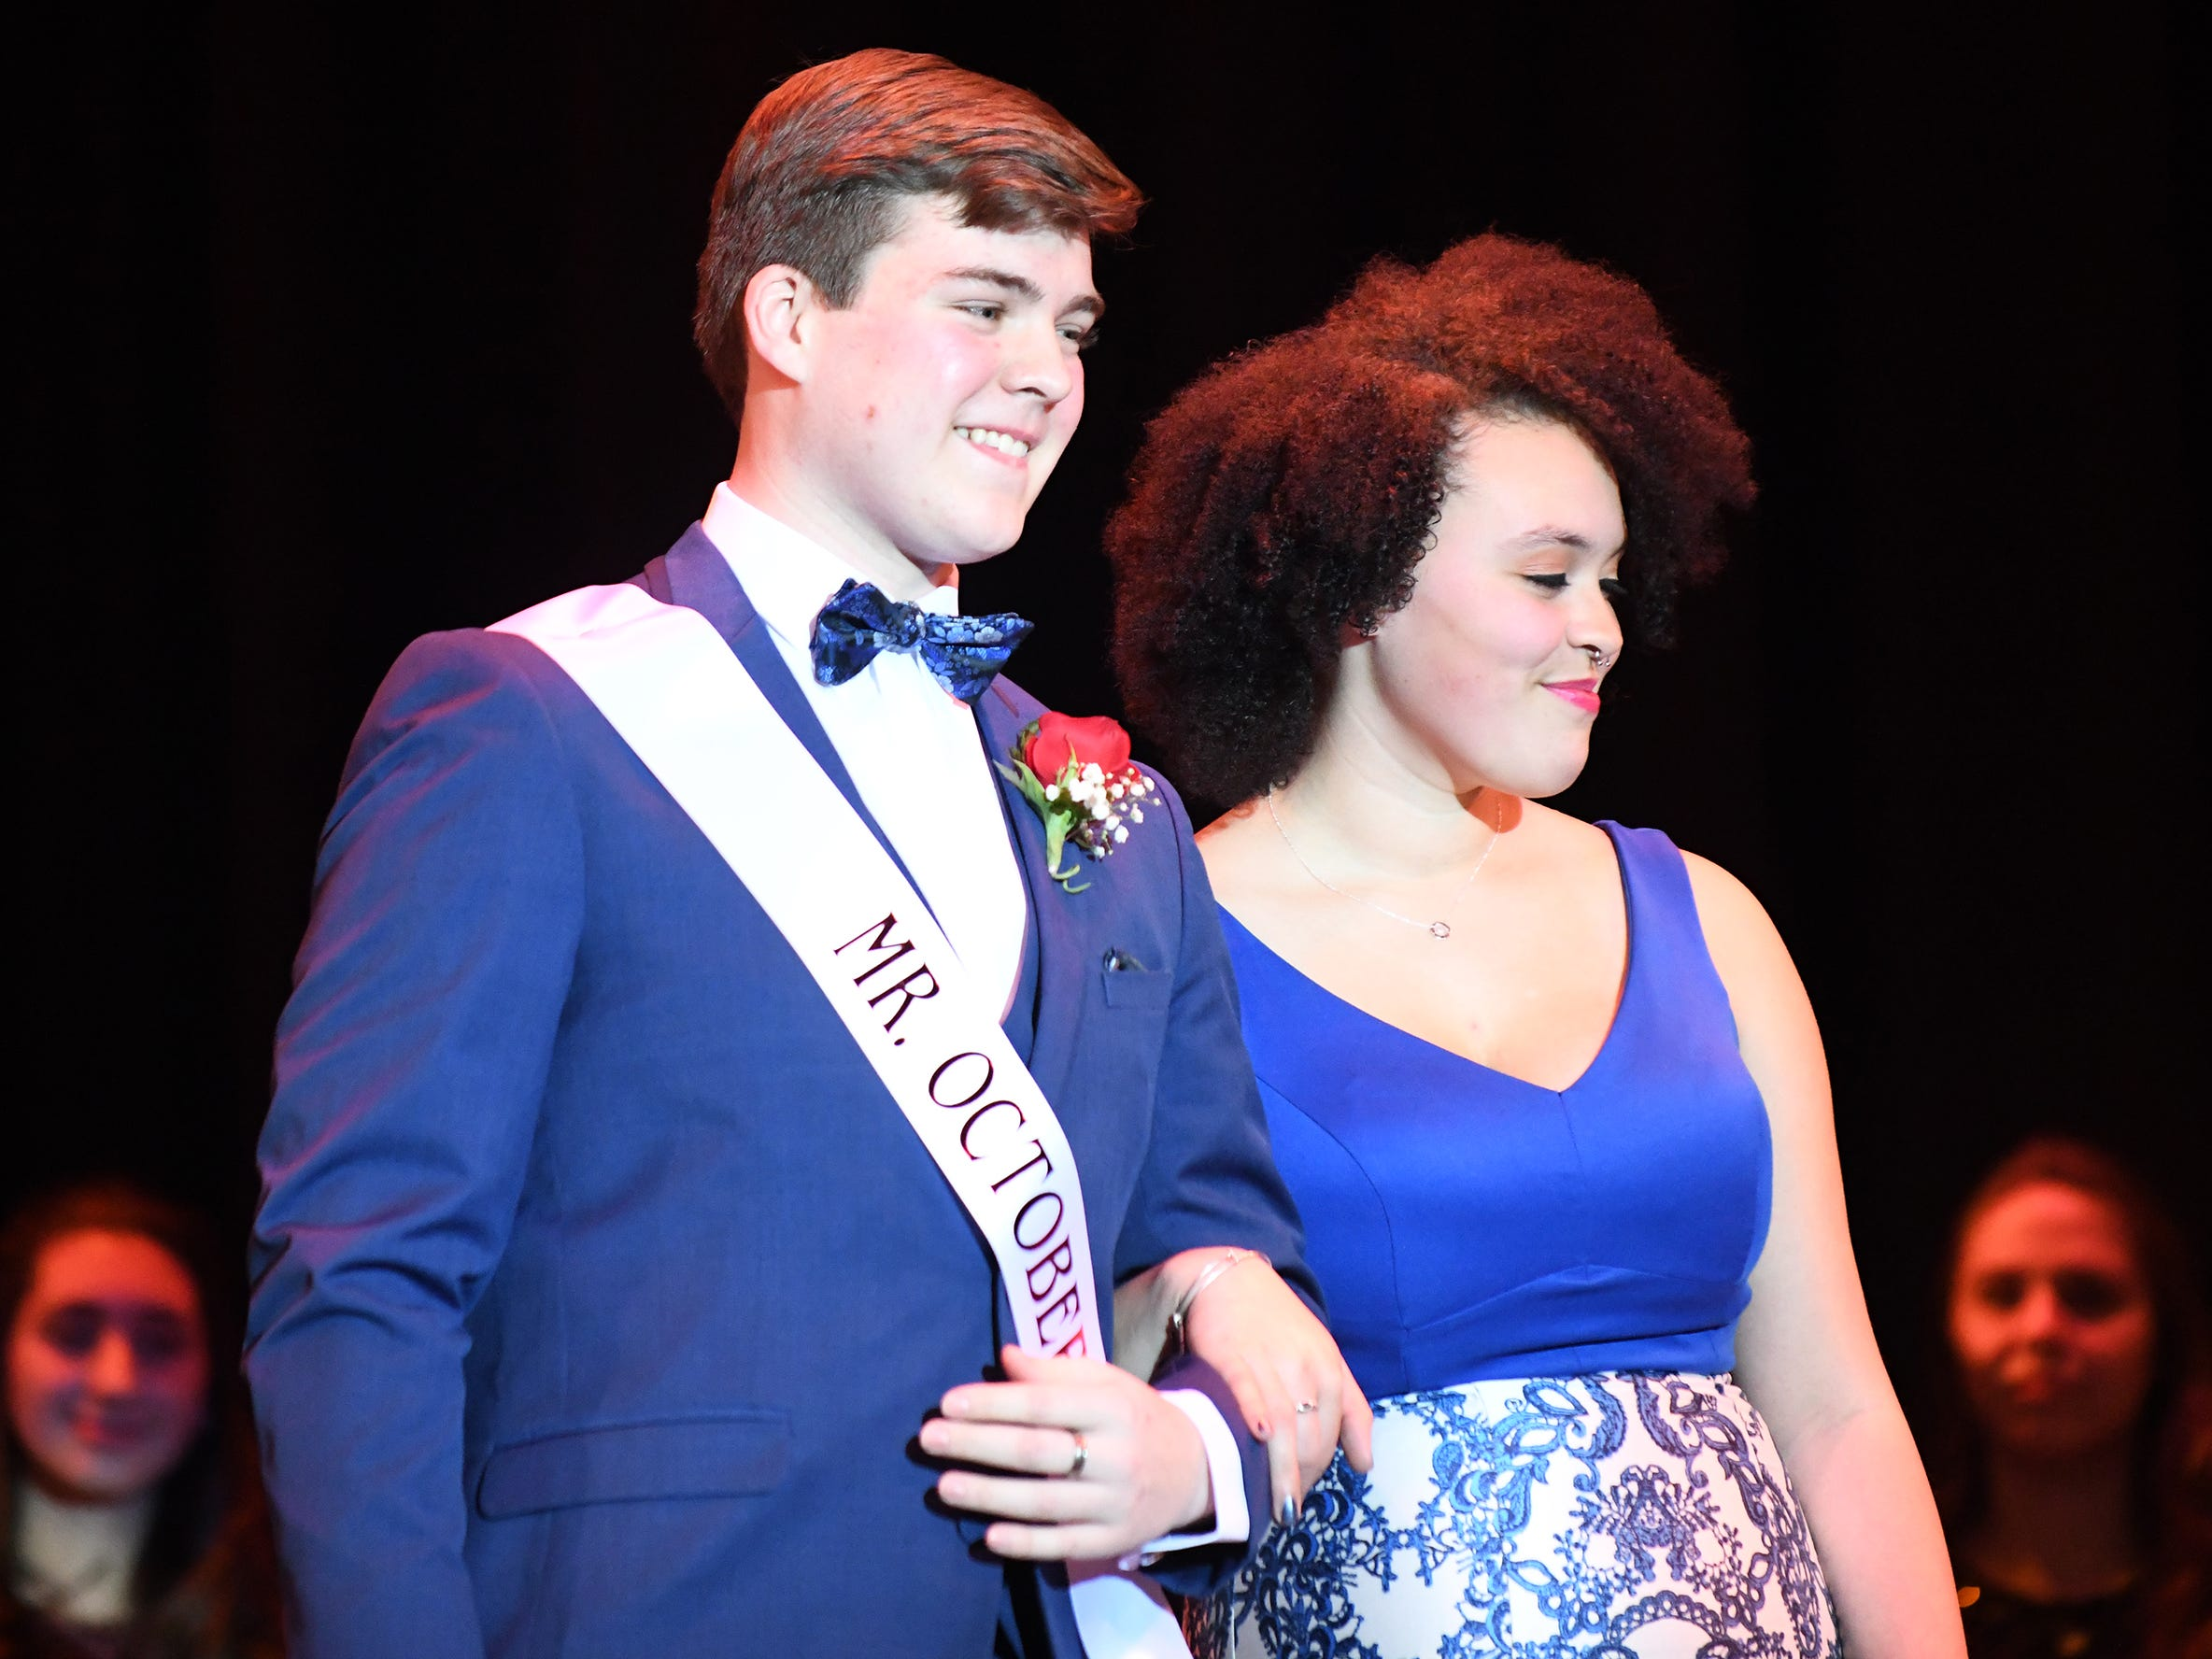 Curtis Riggins shows off his formal wear during Mr. Vineland 2019 at Vineland High School on Thursday, January 10.